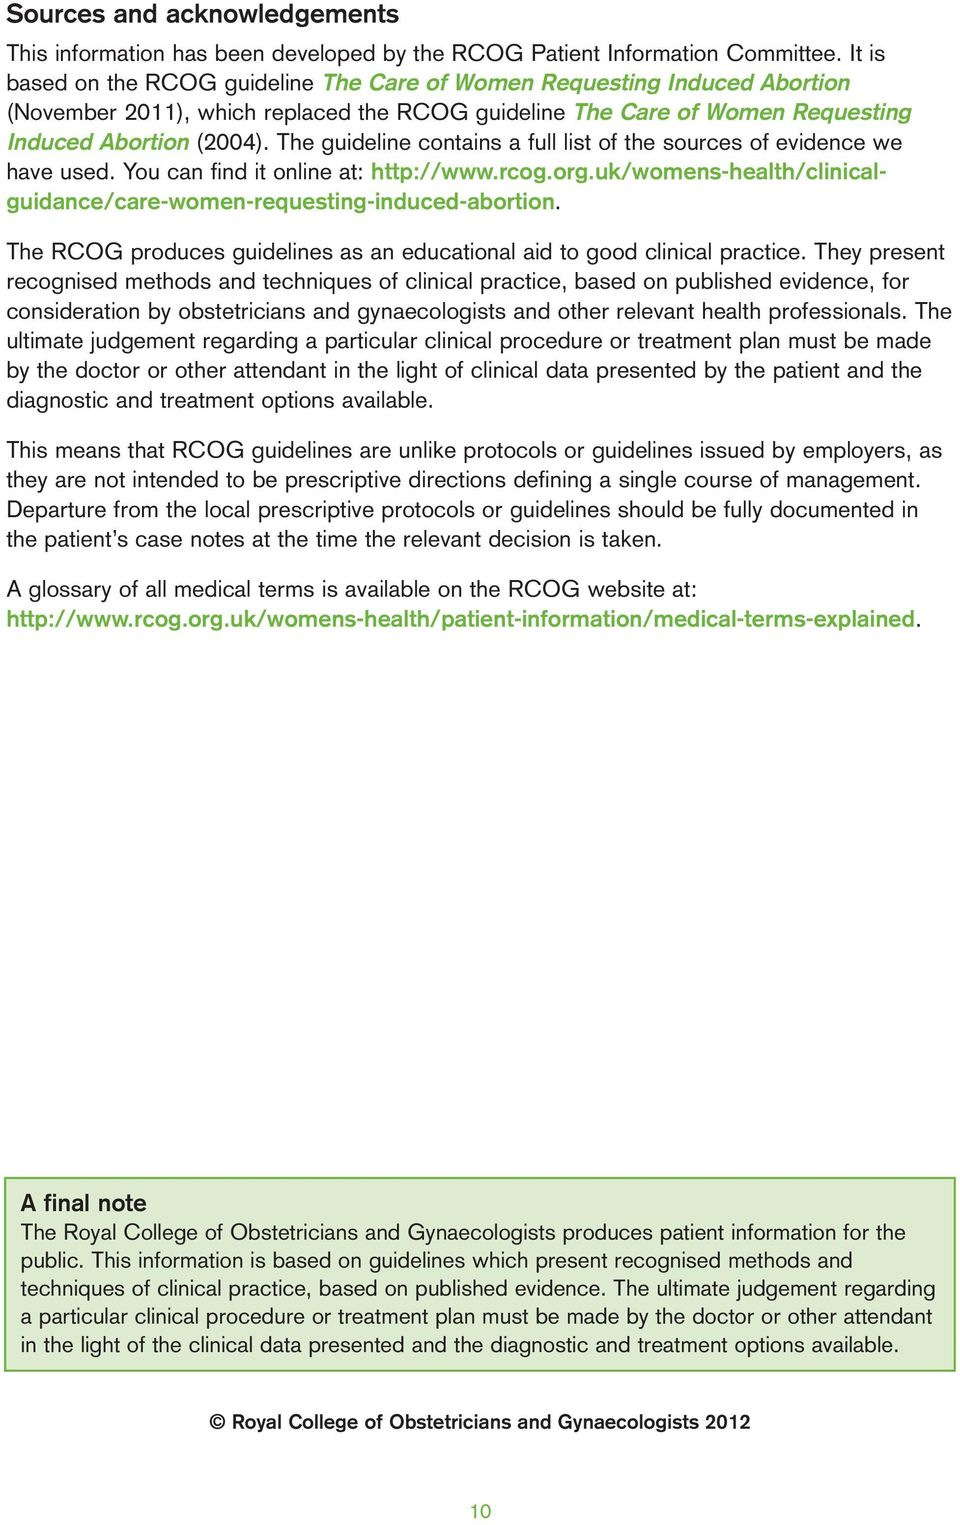 The guideline contains a full list of the sources of evidence we have used. You can find it online at: http://www.rcog.org.uk/womens-health/clinicalguidance/care-women-requesting-induced-abortion.